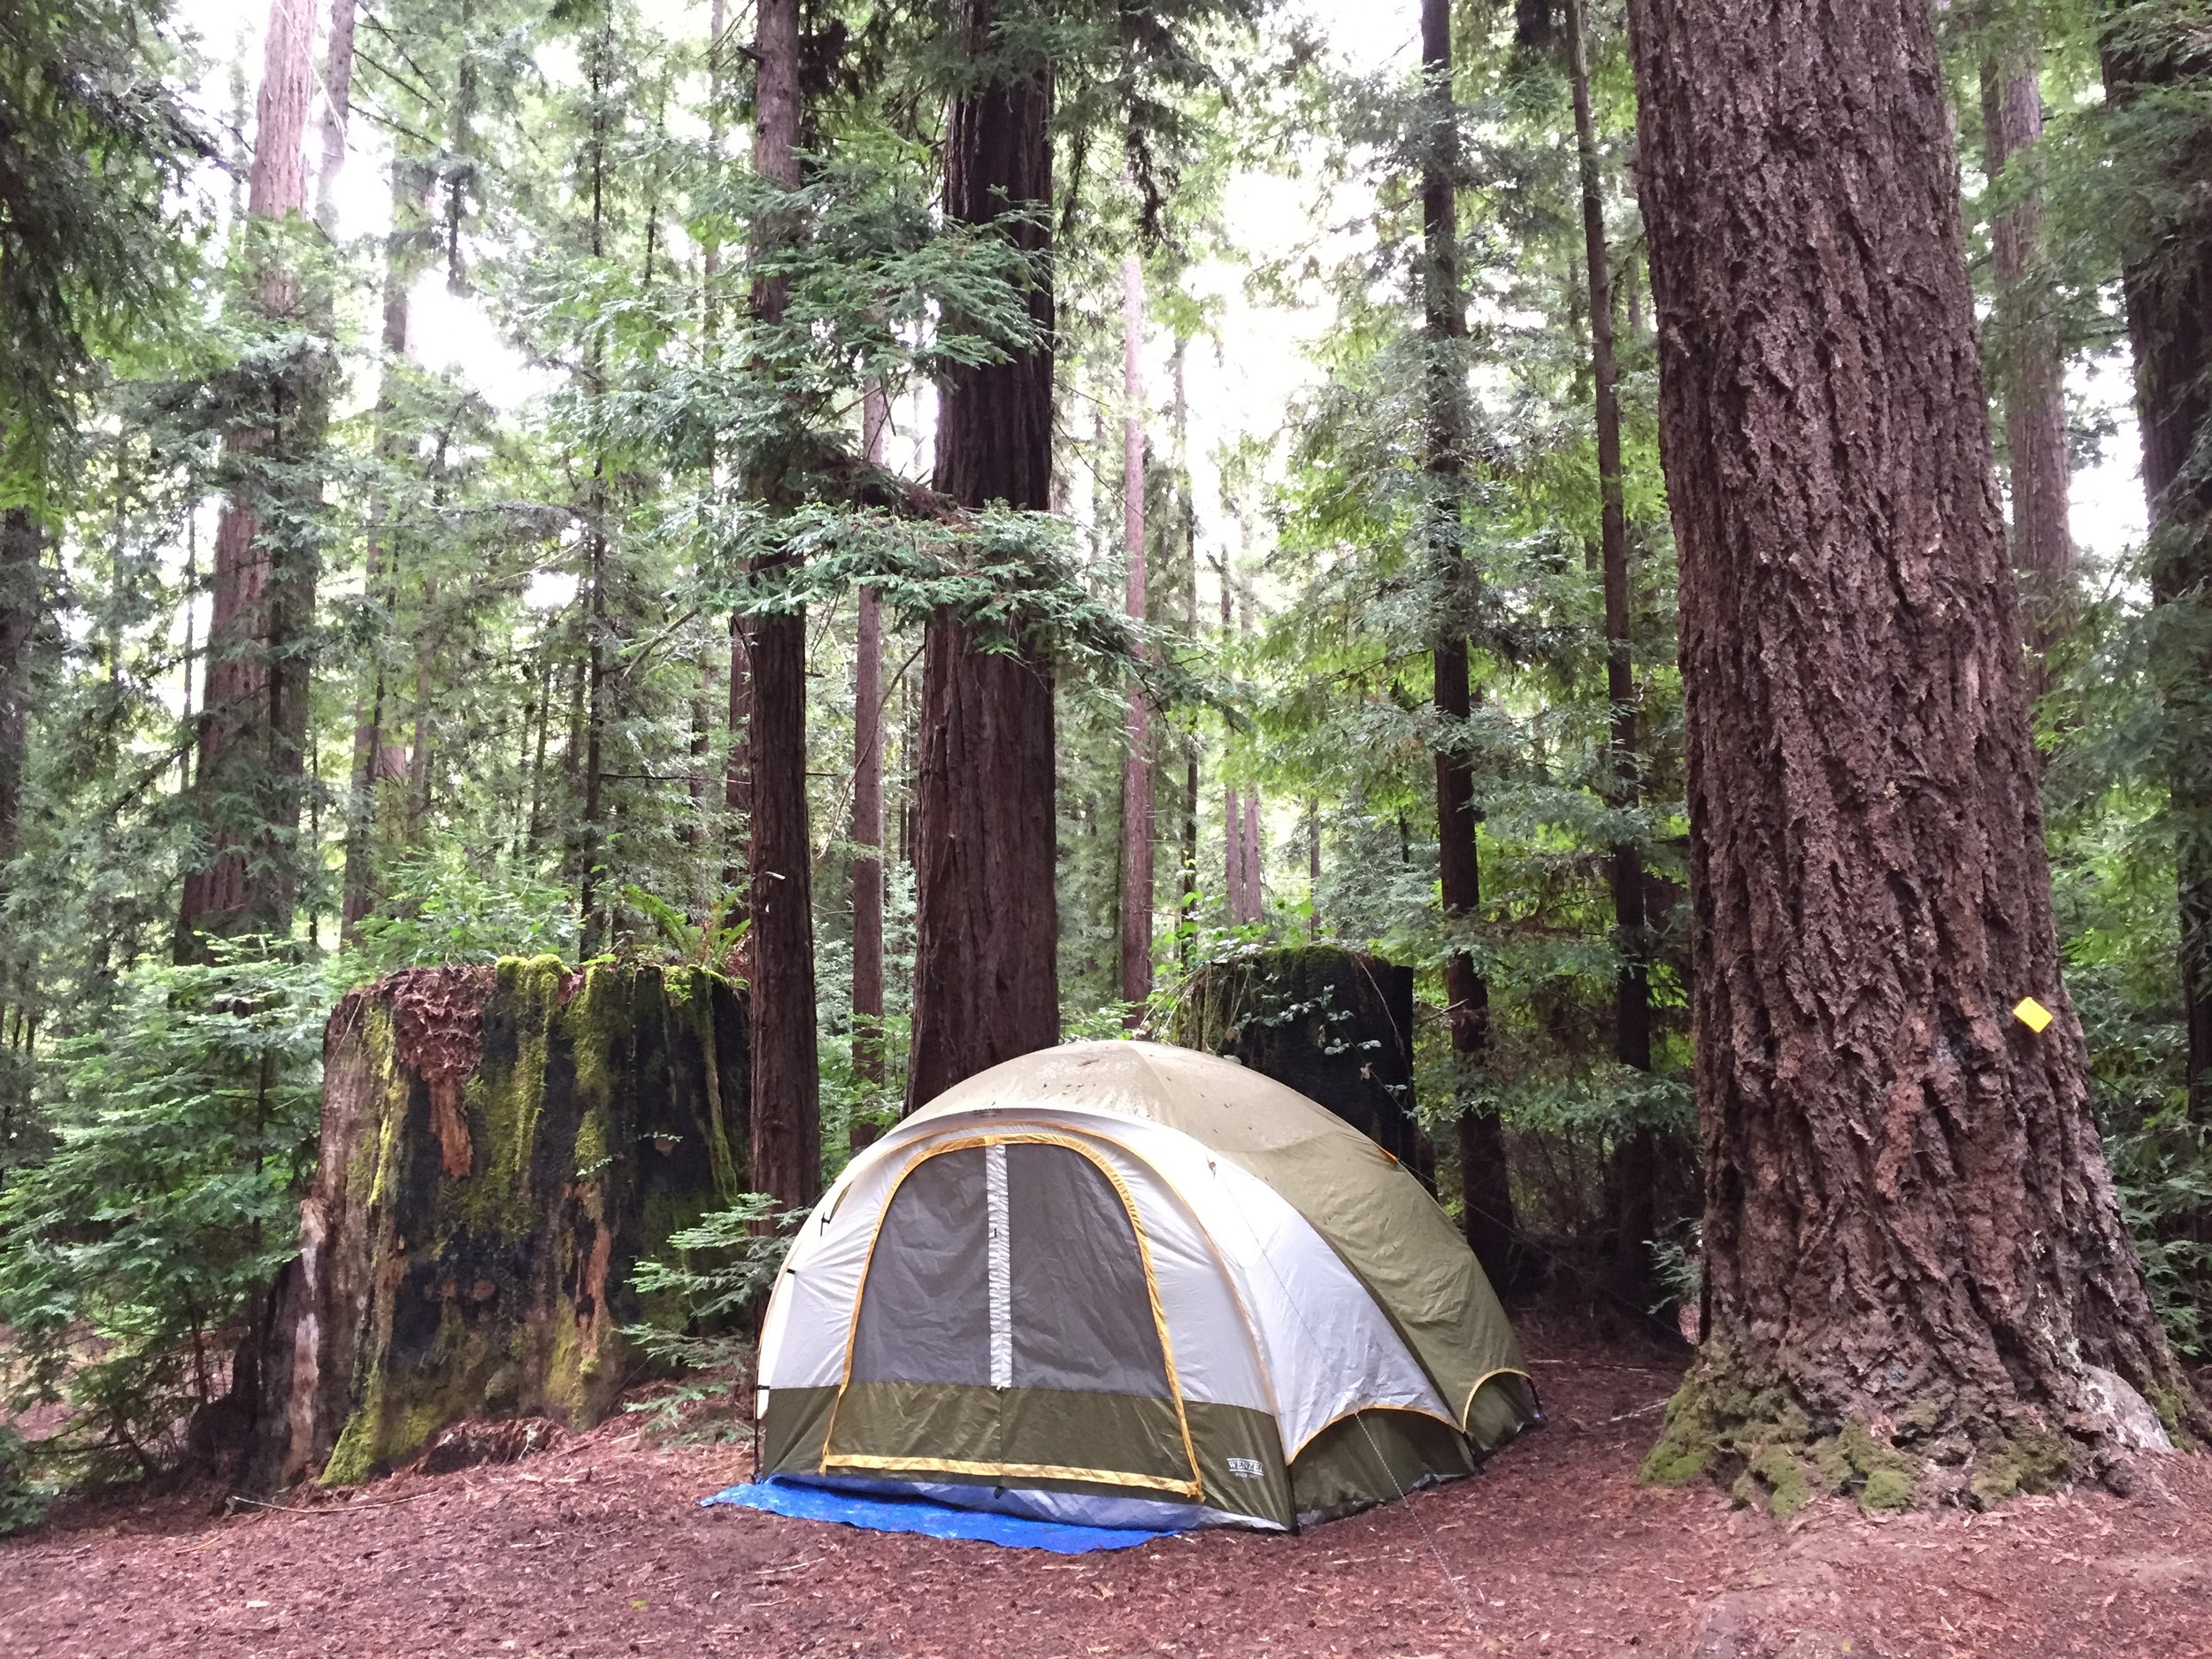 Tent Camping - Bring your own tent! Tents are permitted in designated camping grounds and in the Nature Nest area.  The Redwood Cathedrals are off limits to tent camping.$105.00 per tent